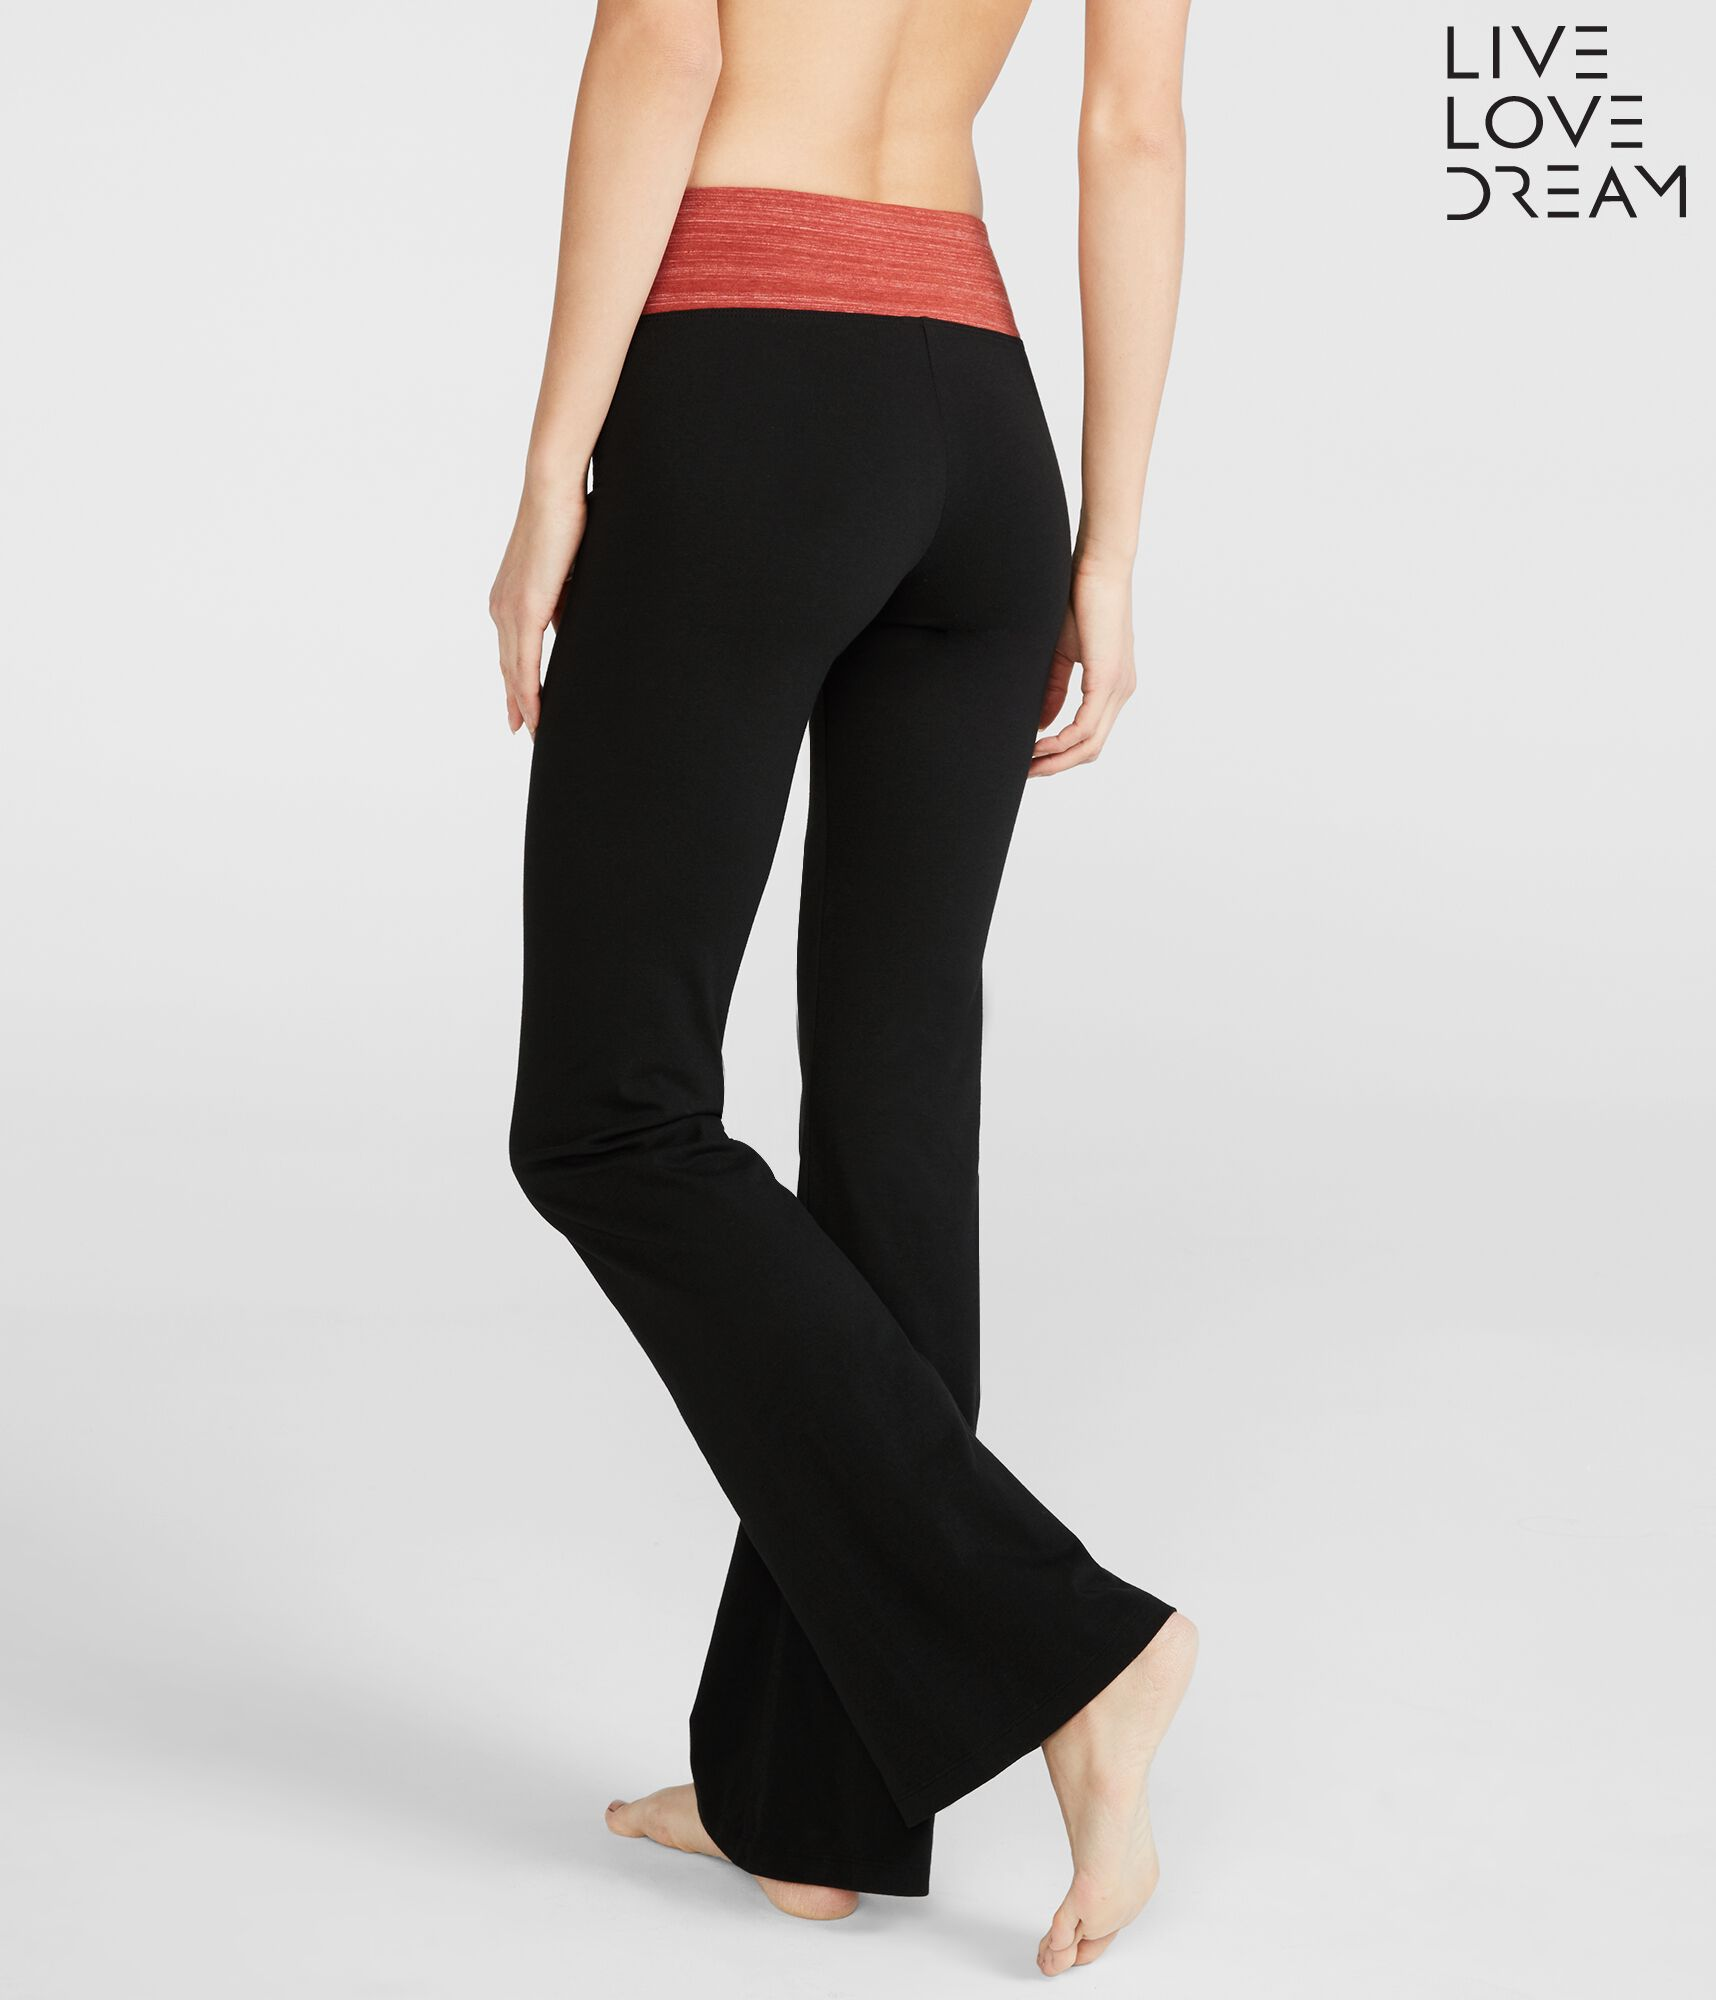 d6513bd015db7 What To Wear With Bootcut Yoga Pants | Kayaworkout.co